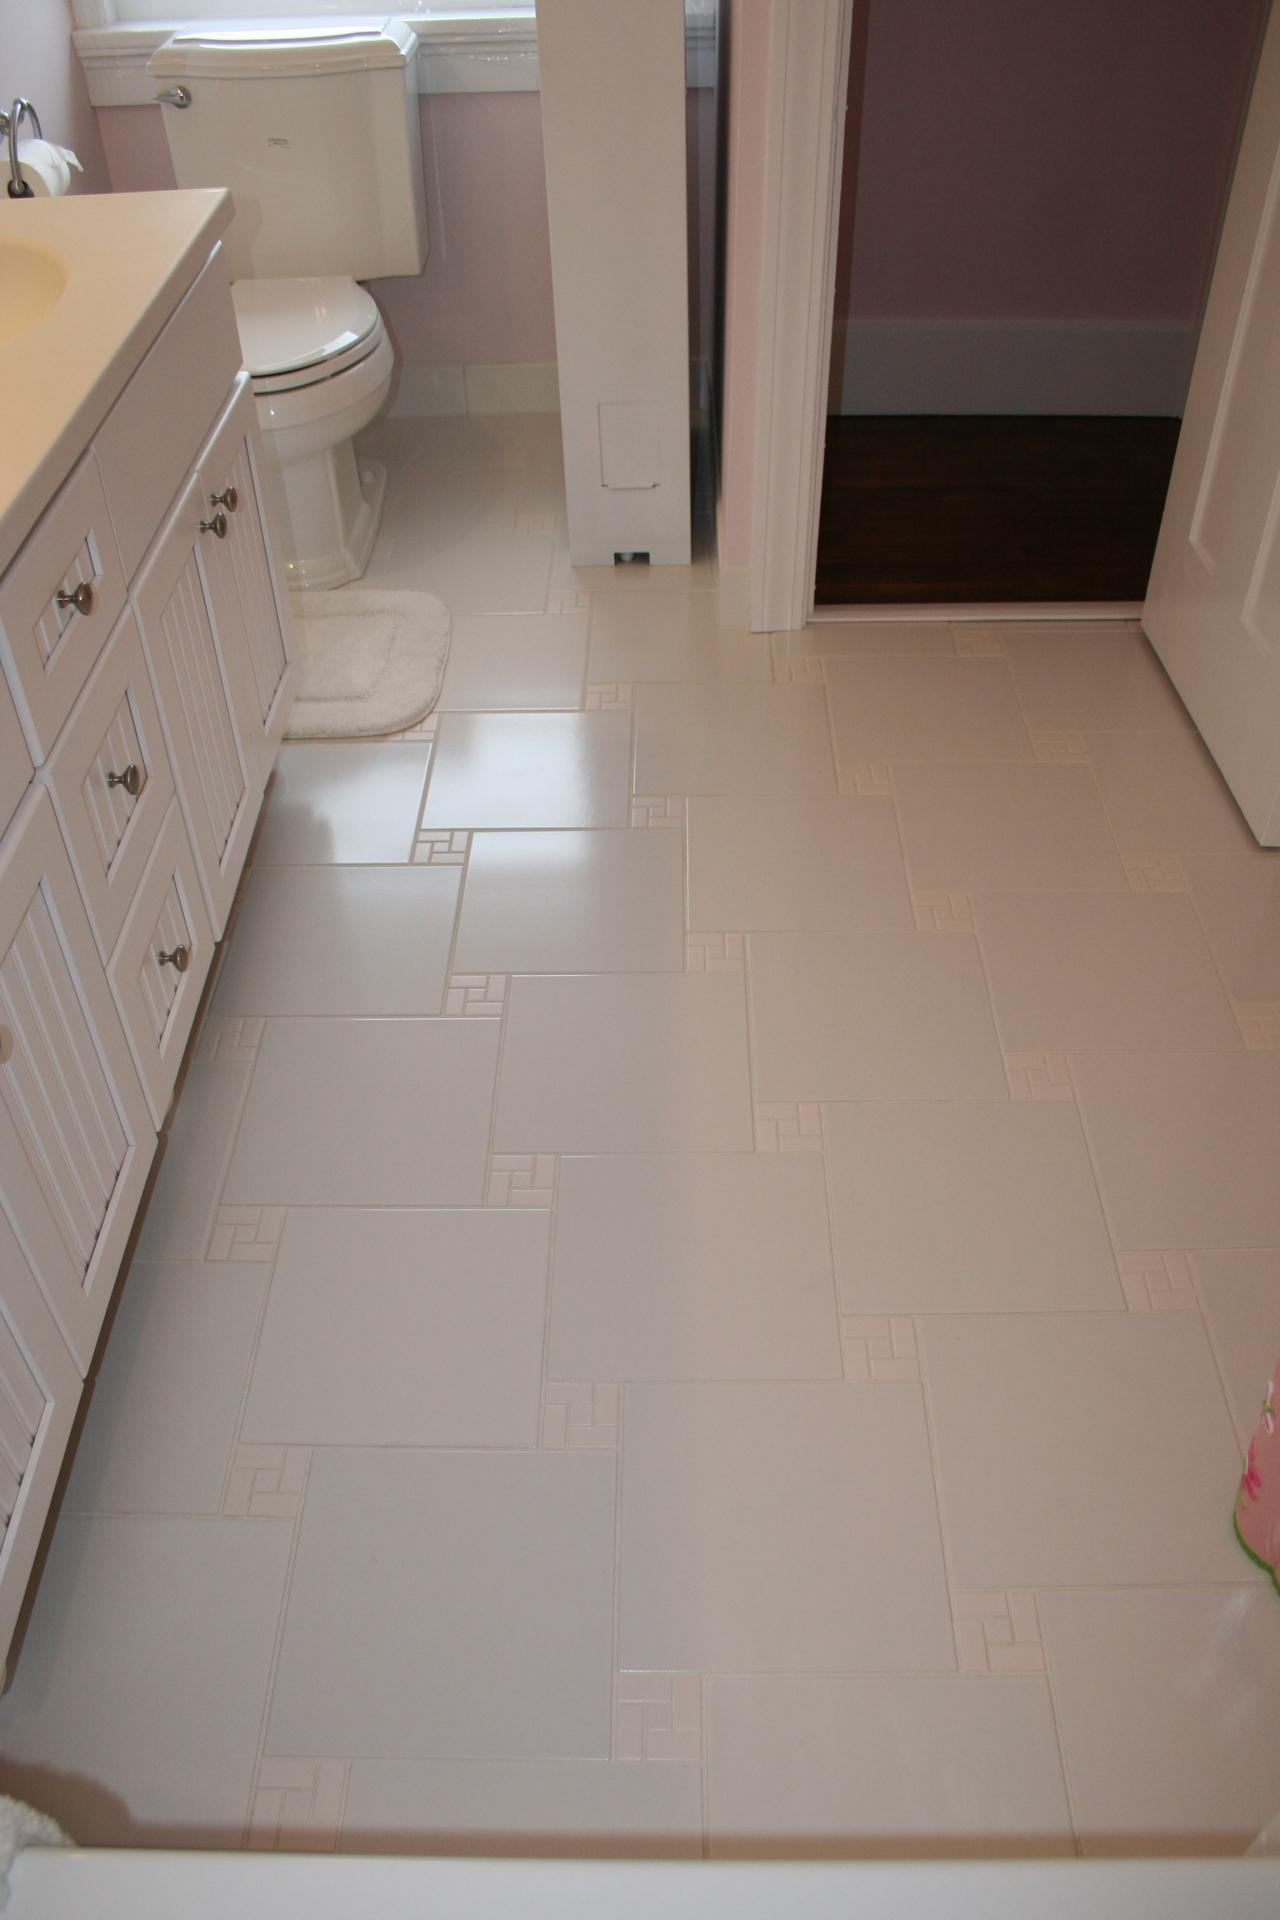 Nest homes construction floor and wall tile designs white 2x2 mosaics surrounded with 12x12 tile pinwheel pattern flooring dailygadgetfo Images